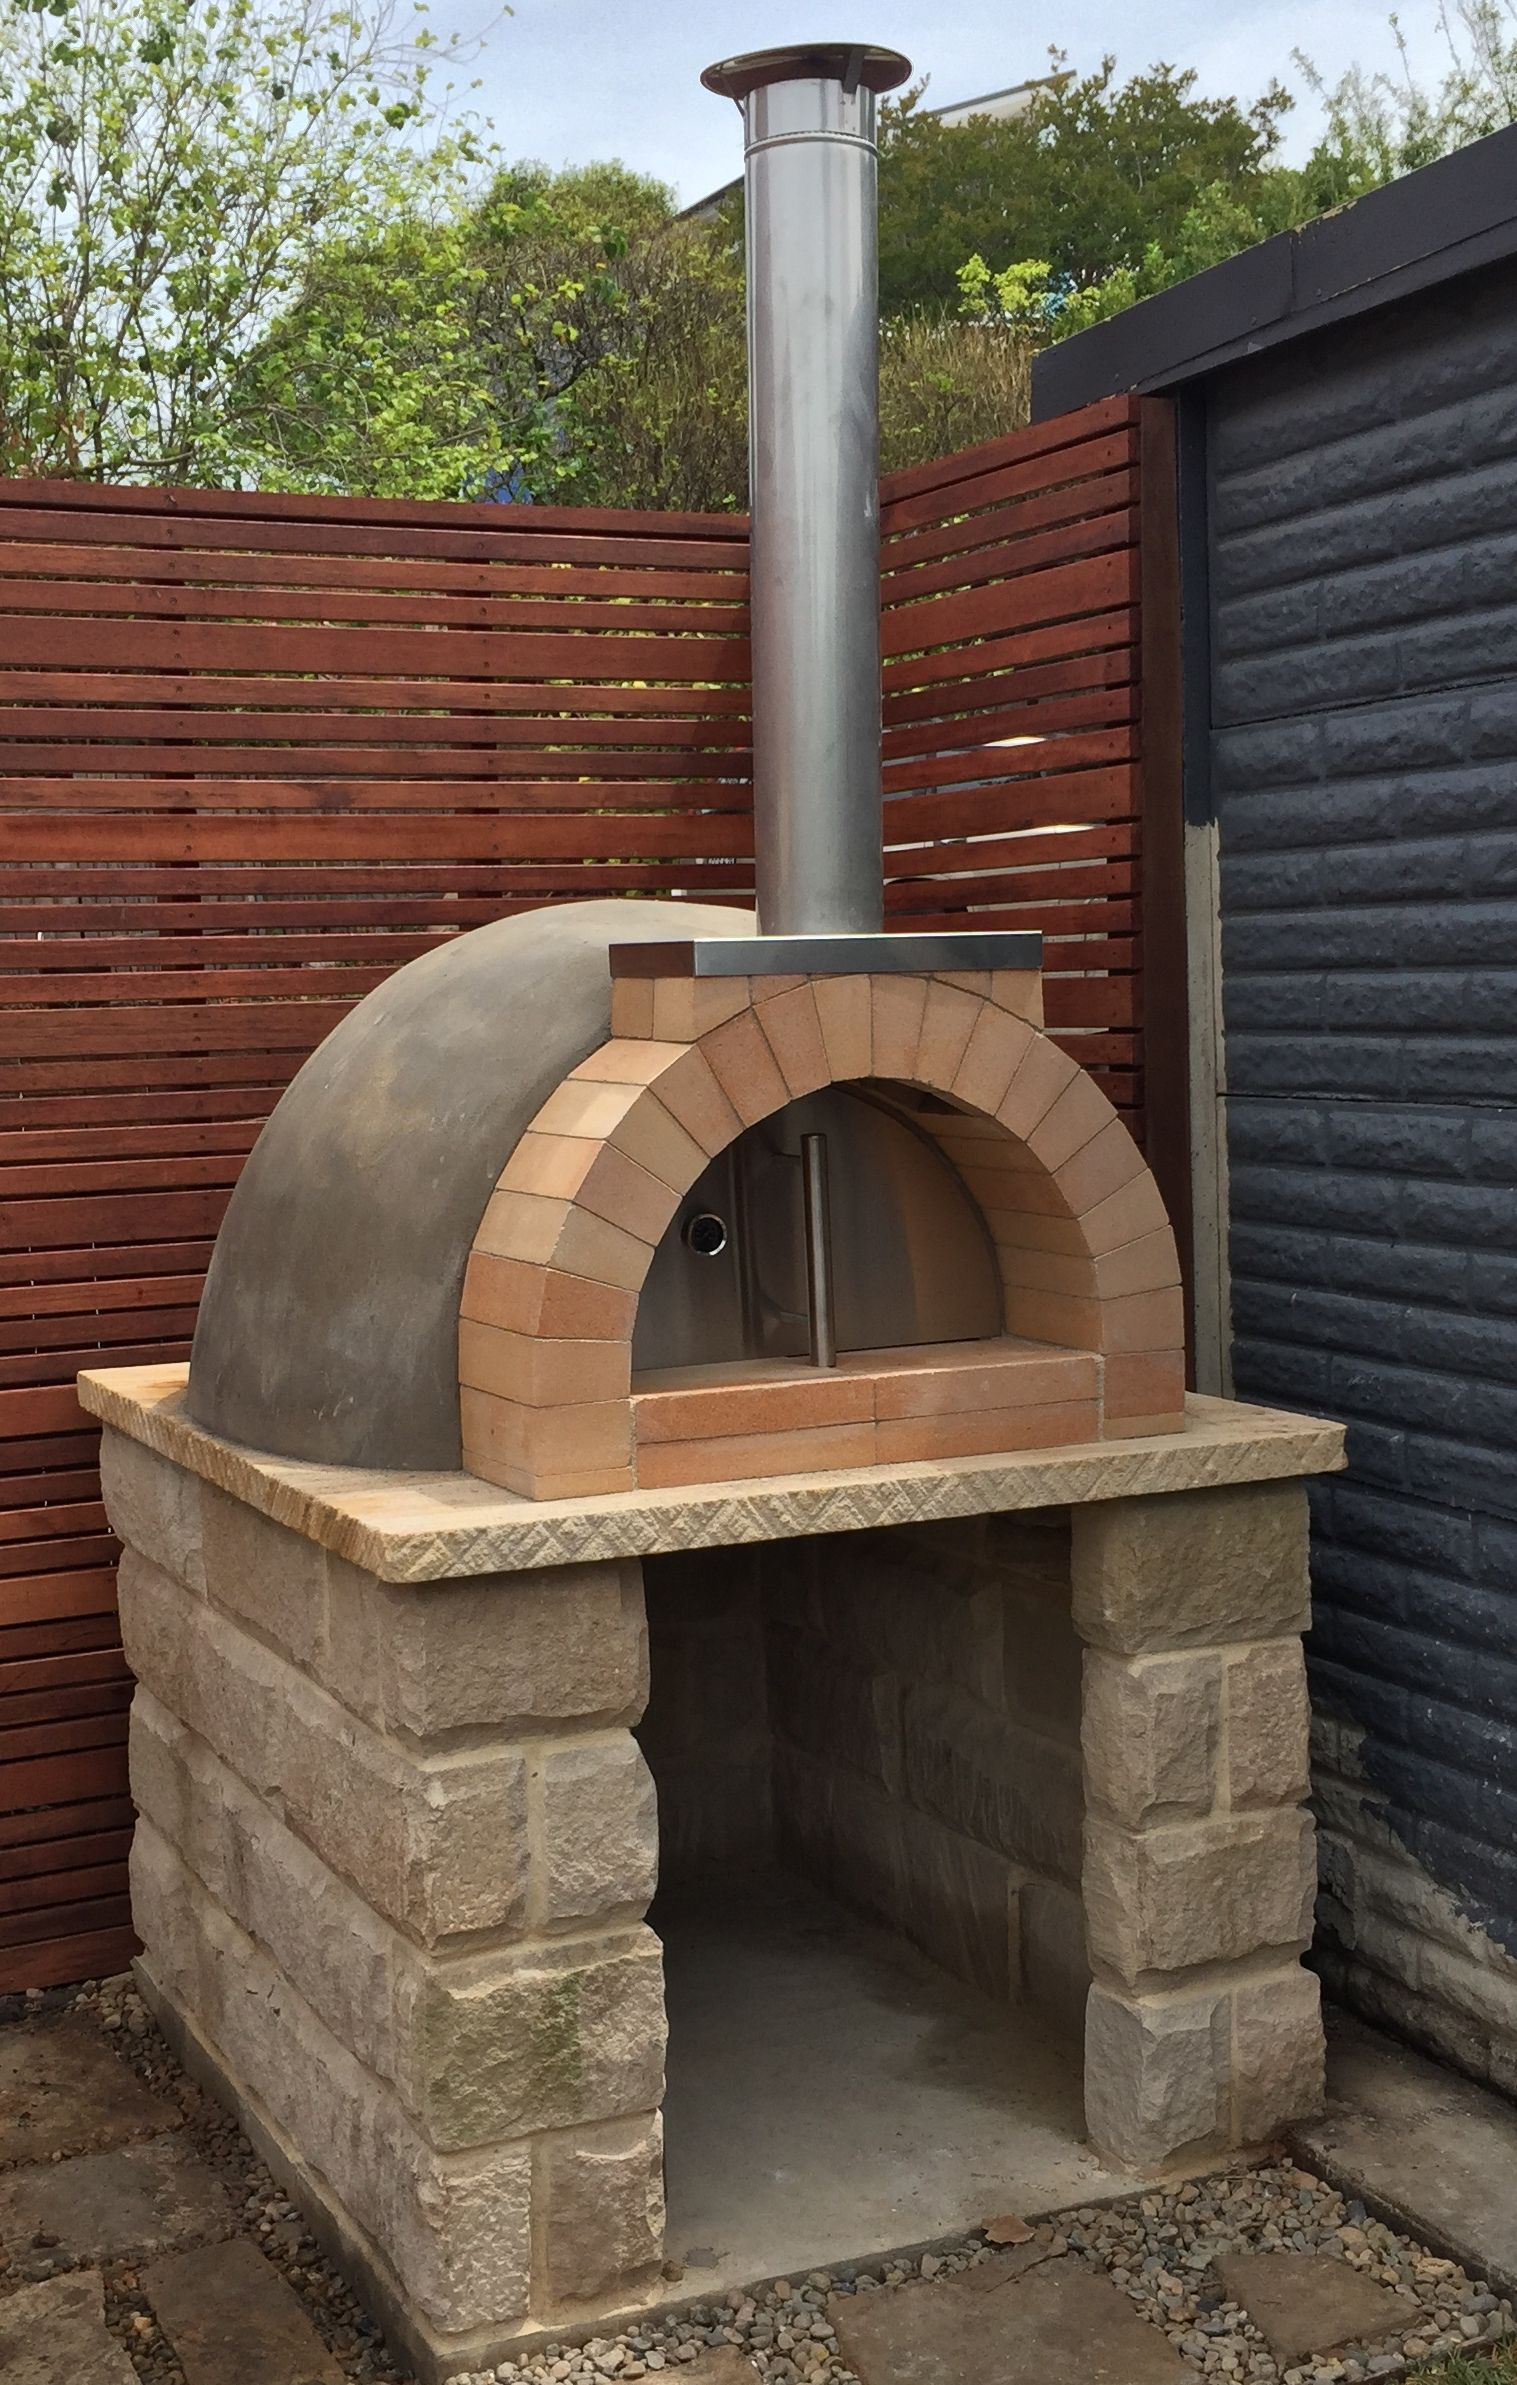 Pizza Holzofen Selber Bauen Woodfired Pizza Oven Images Google Search Holzback Räucher